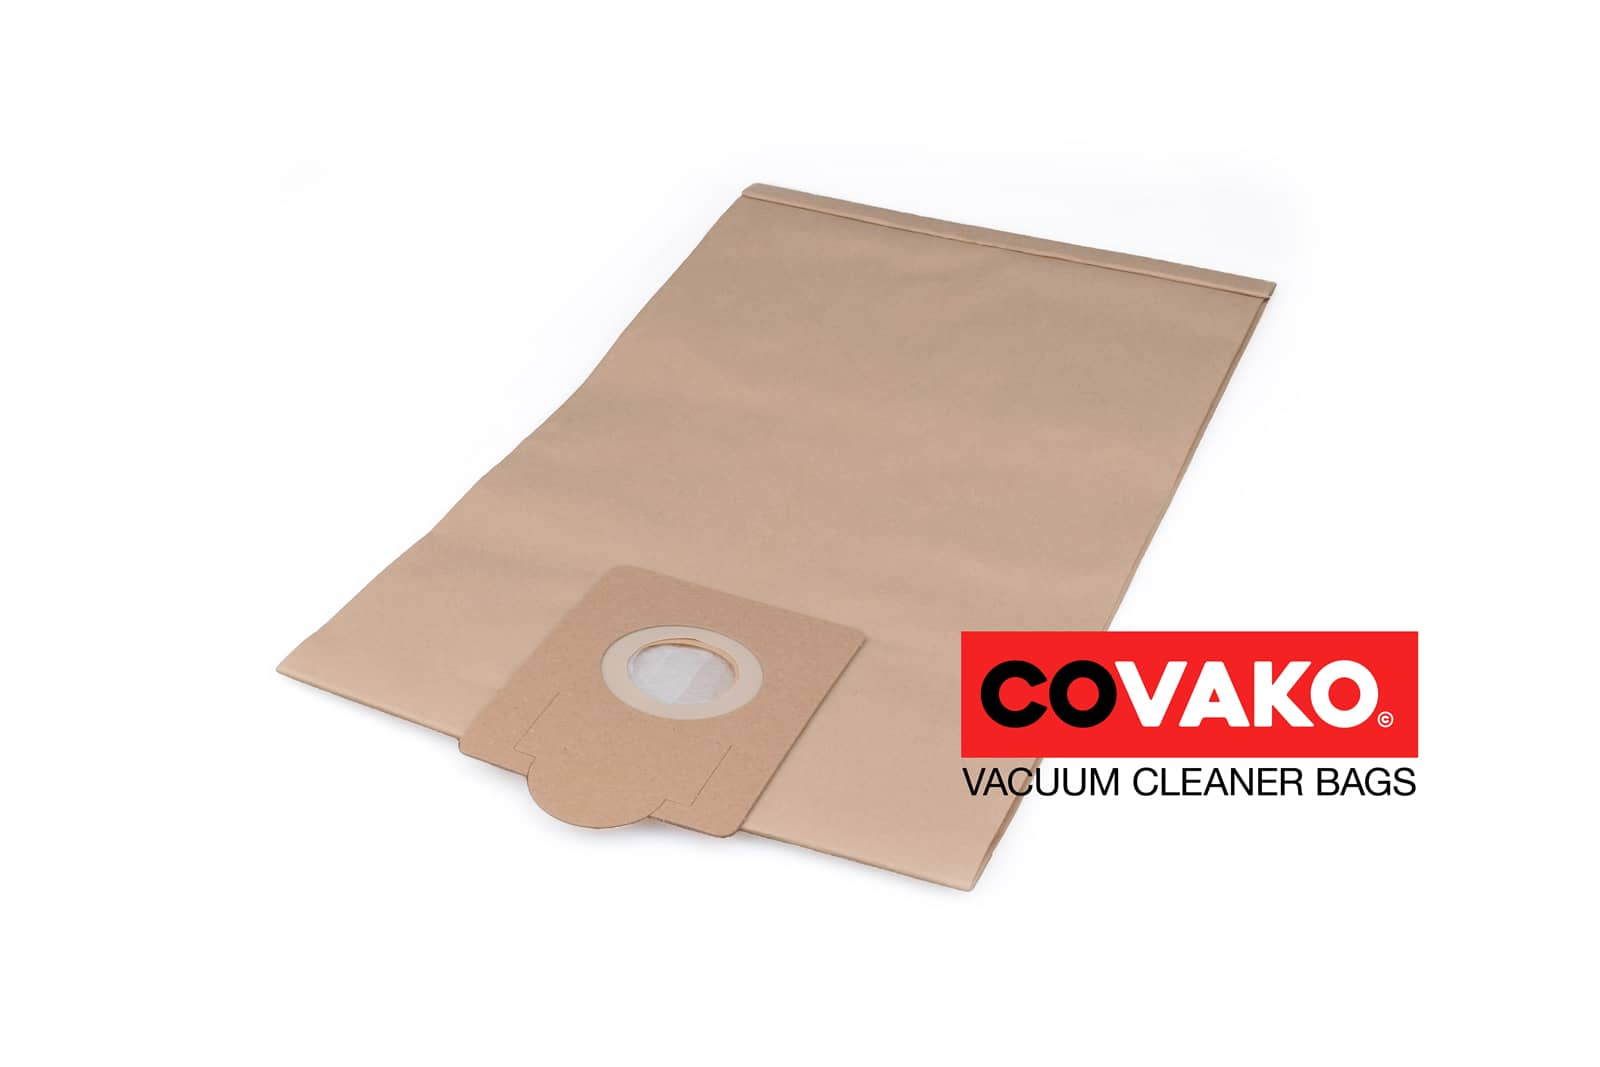 Oehme Otto K103200941 / Paper - Oehme Otto vacuum cleaner bags